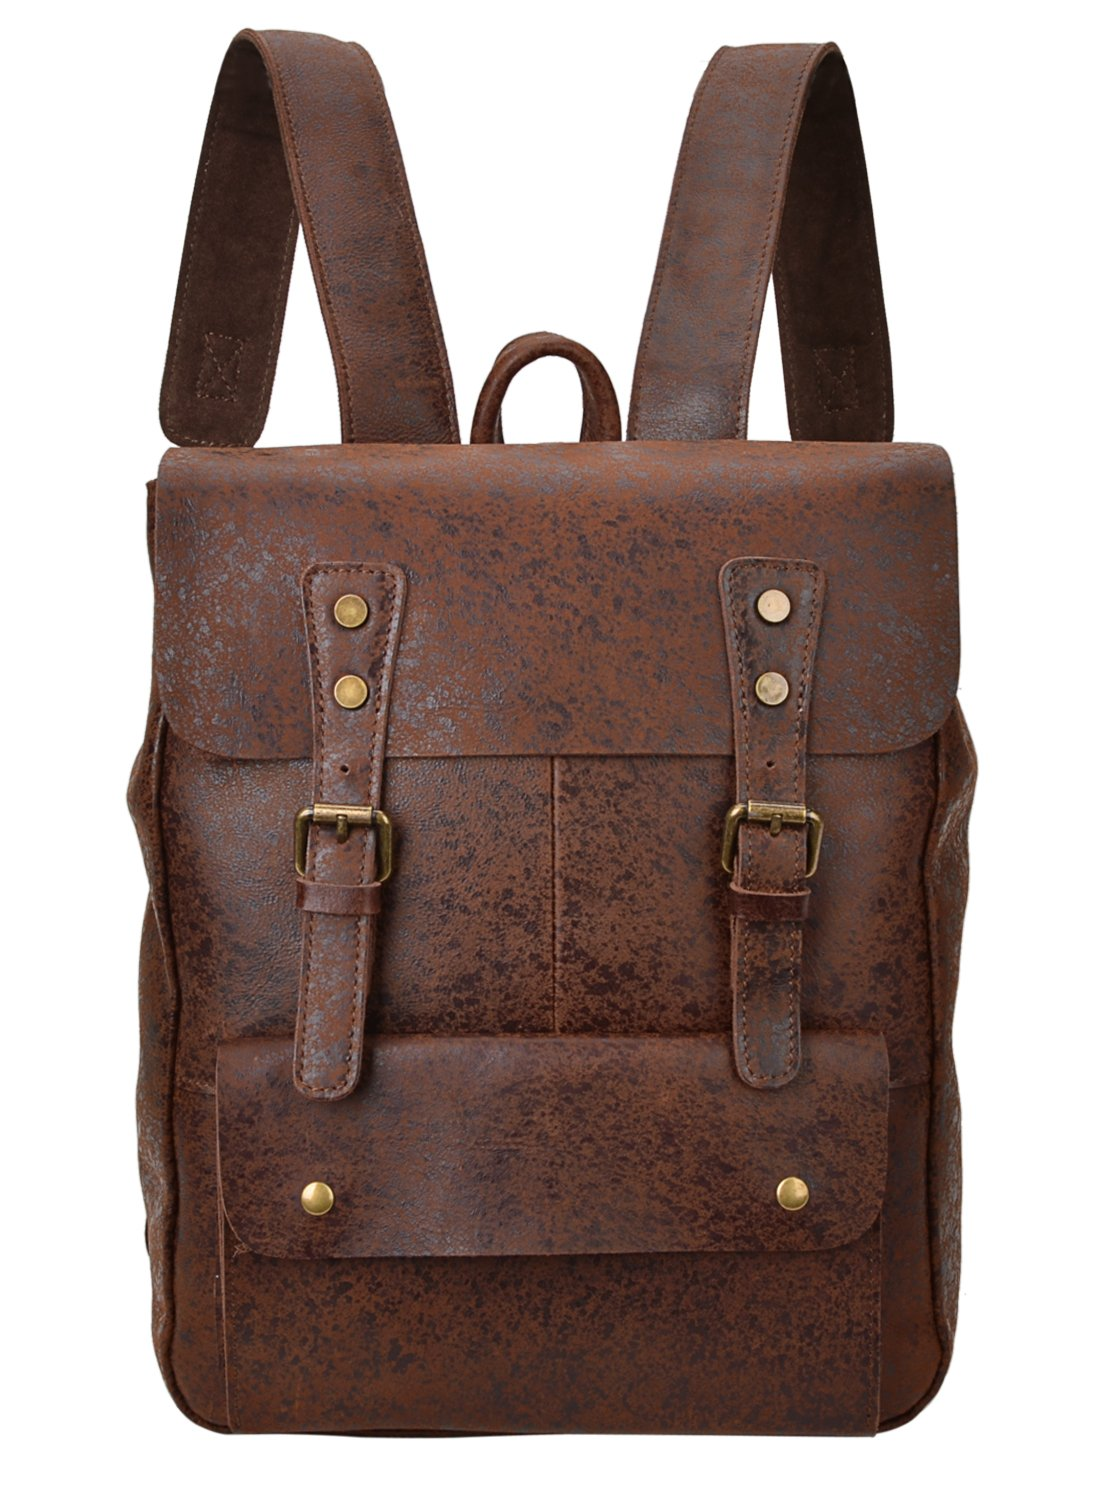 ALTOSY Vintage Genuine Leather Backpack College School Bookbag Travel Rucksack 8175 (coffee) by ALTOSY